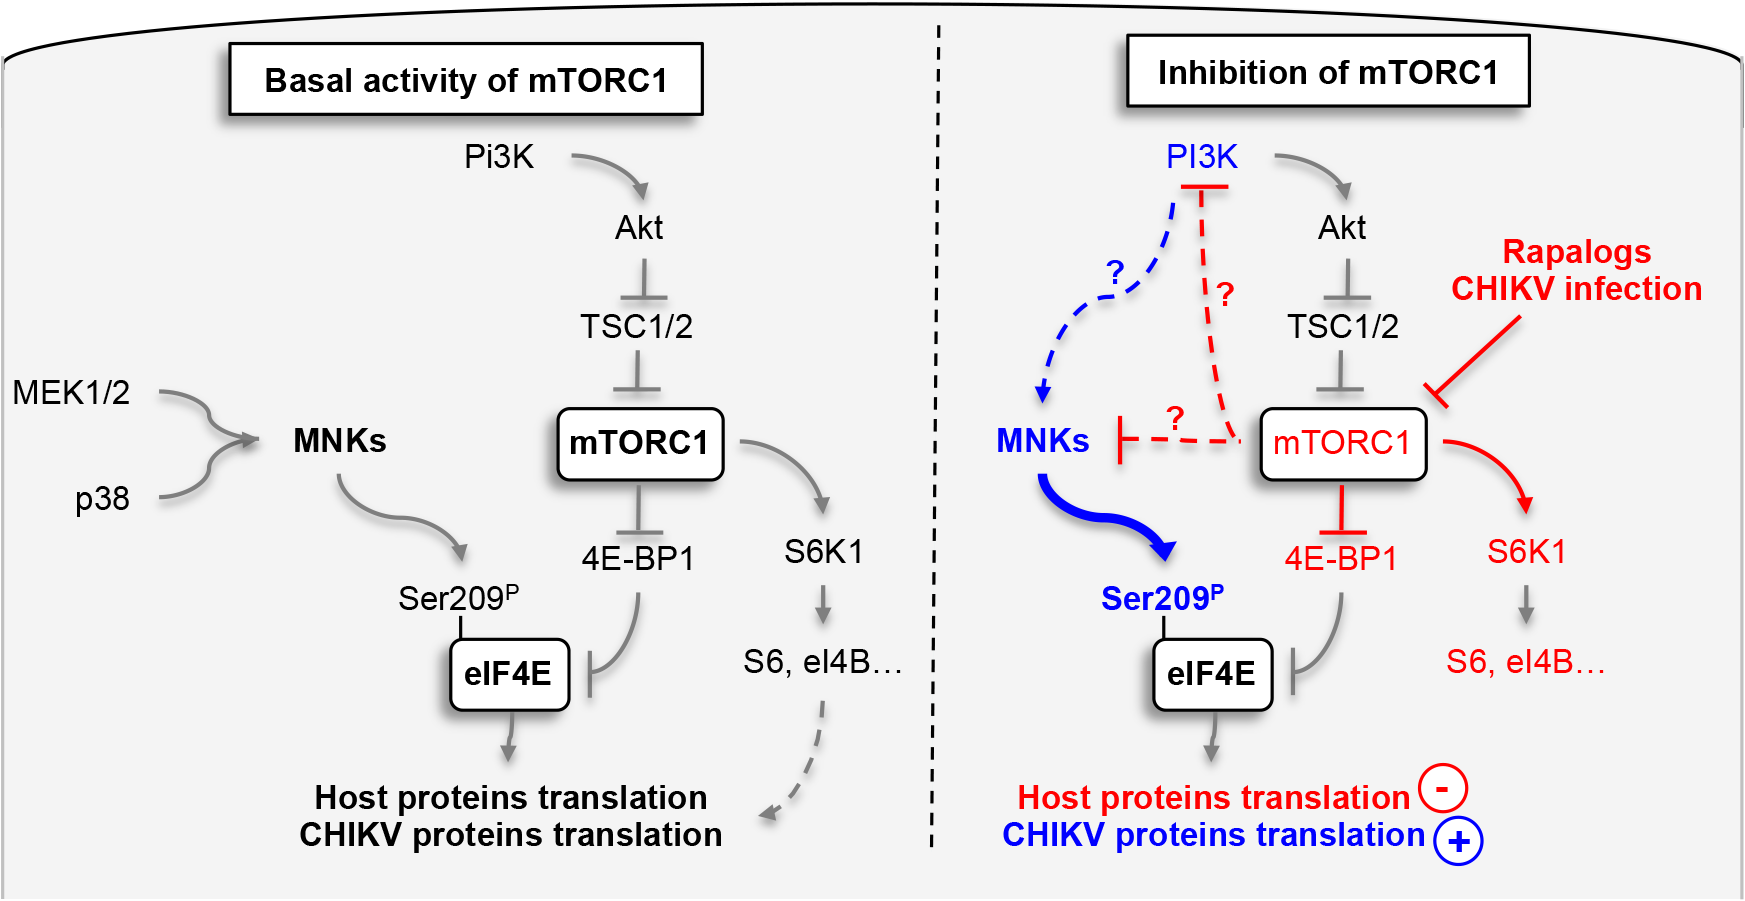 Schematic representation of mechanism by which CHIKV protein synthesis is increase by the inhibition of mTORC1.